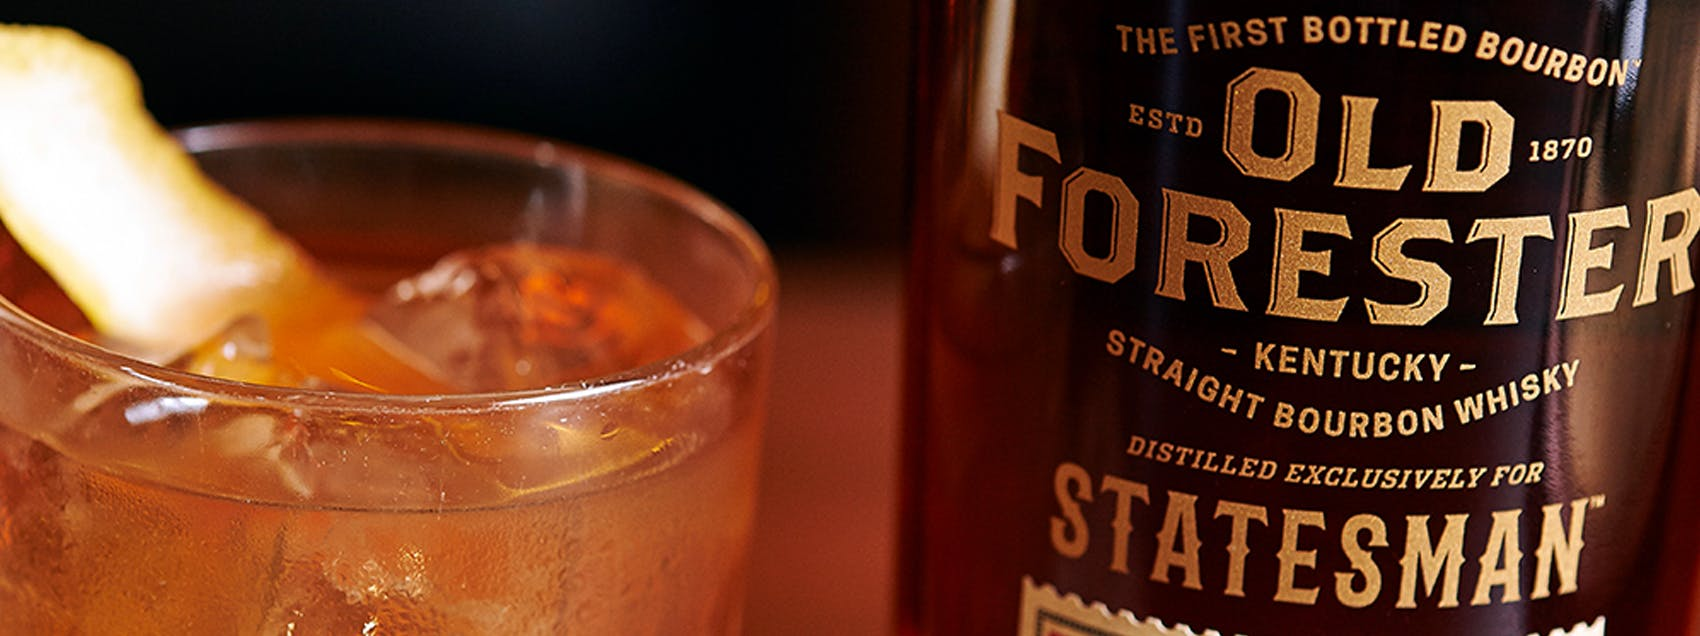 Statesman Old Fashioned